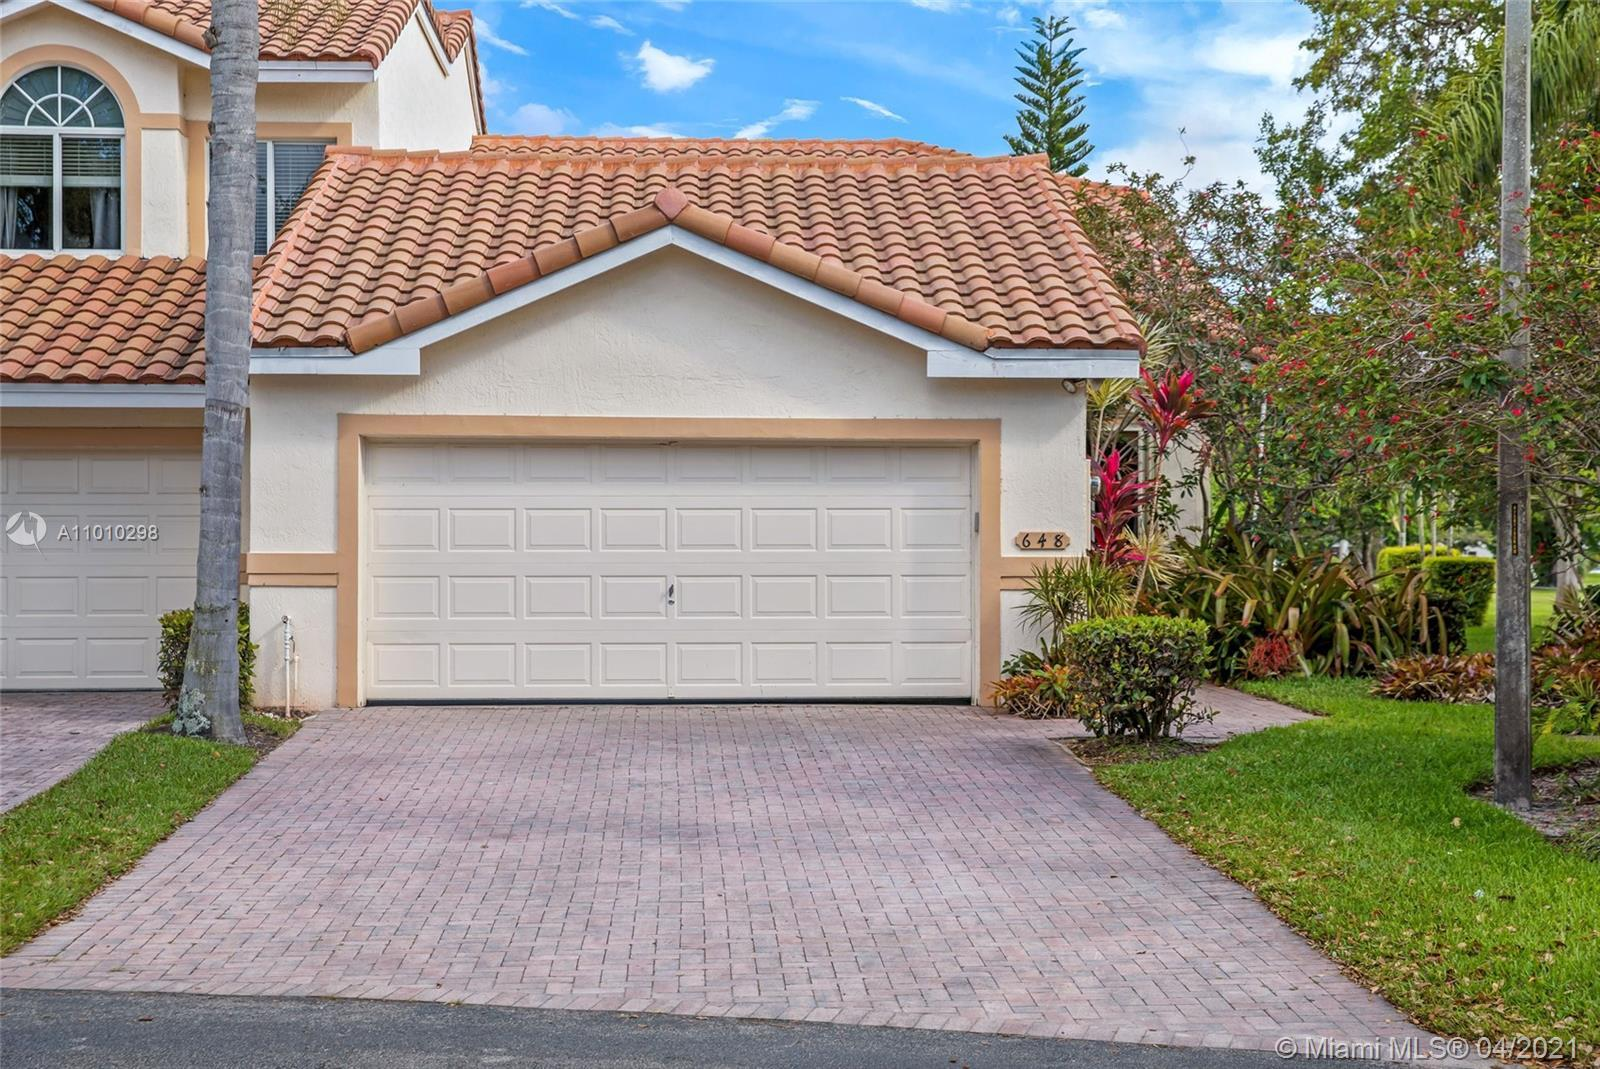 Great Corner Townhouse 3 bedroom 3 full baths & powder room. Open living area with volume ceiling. M